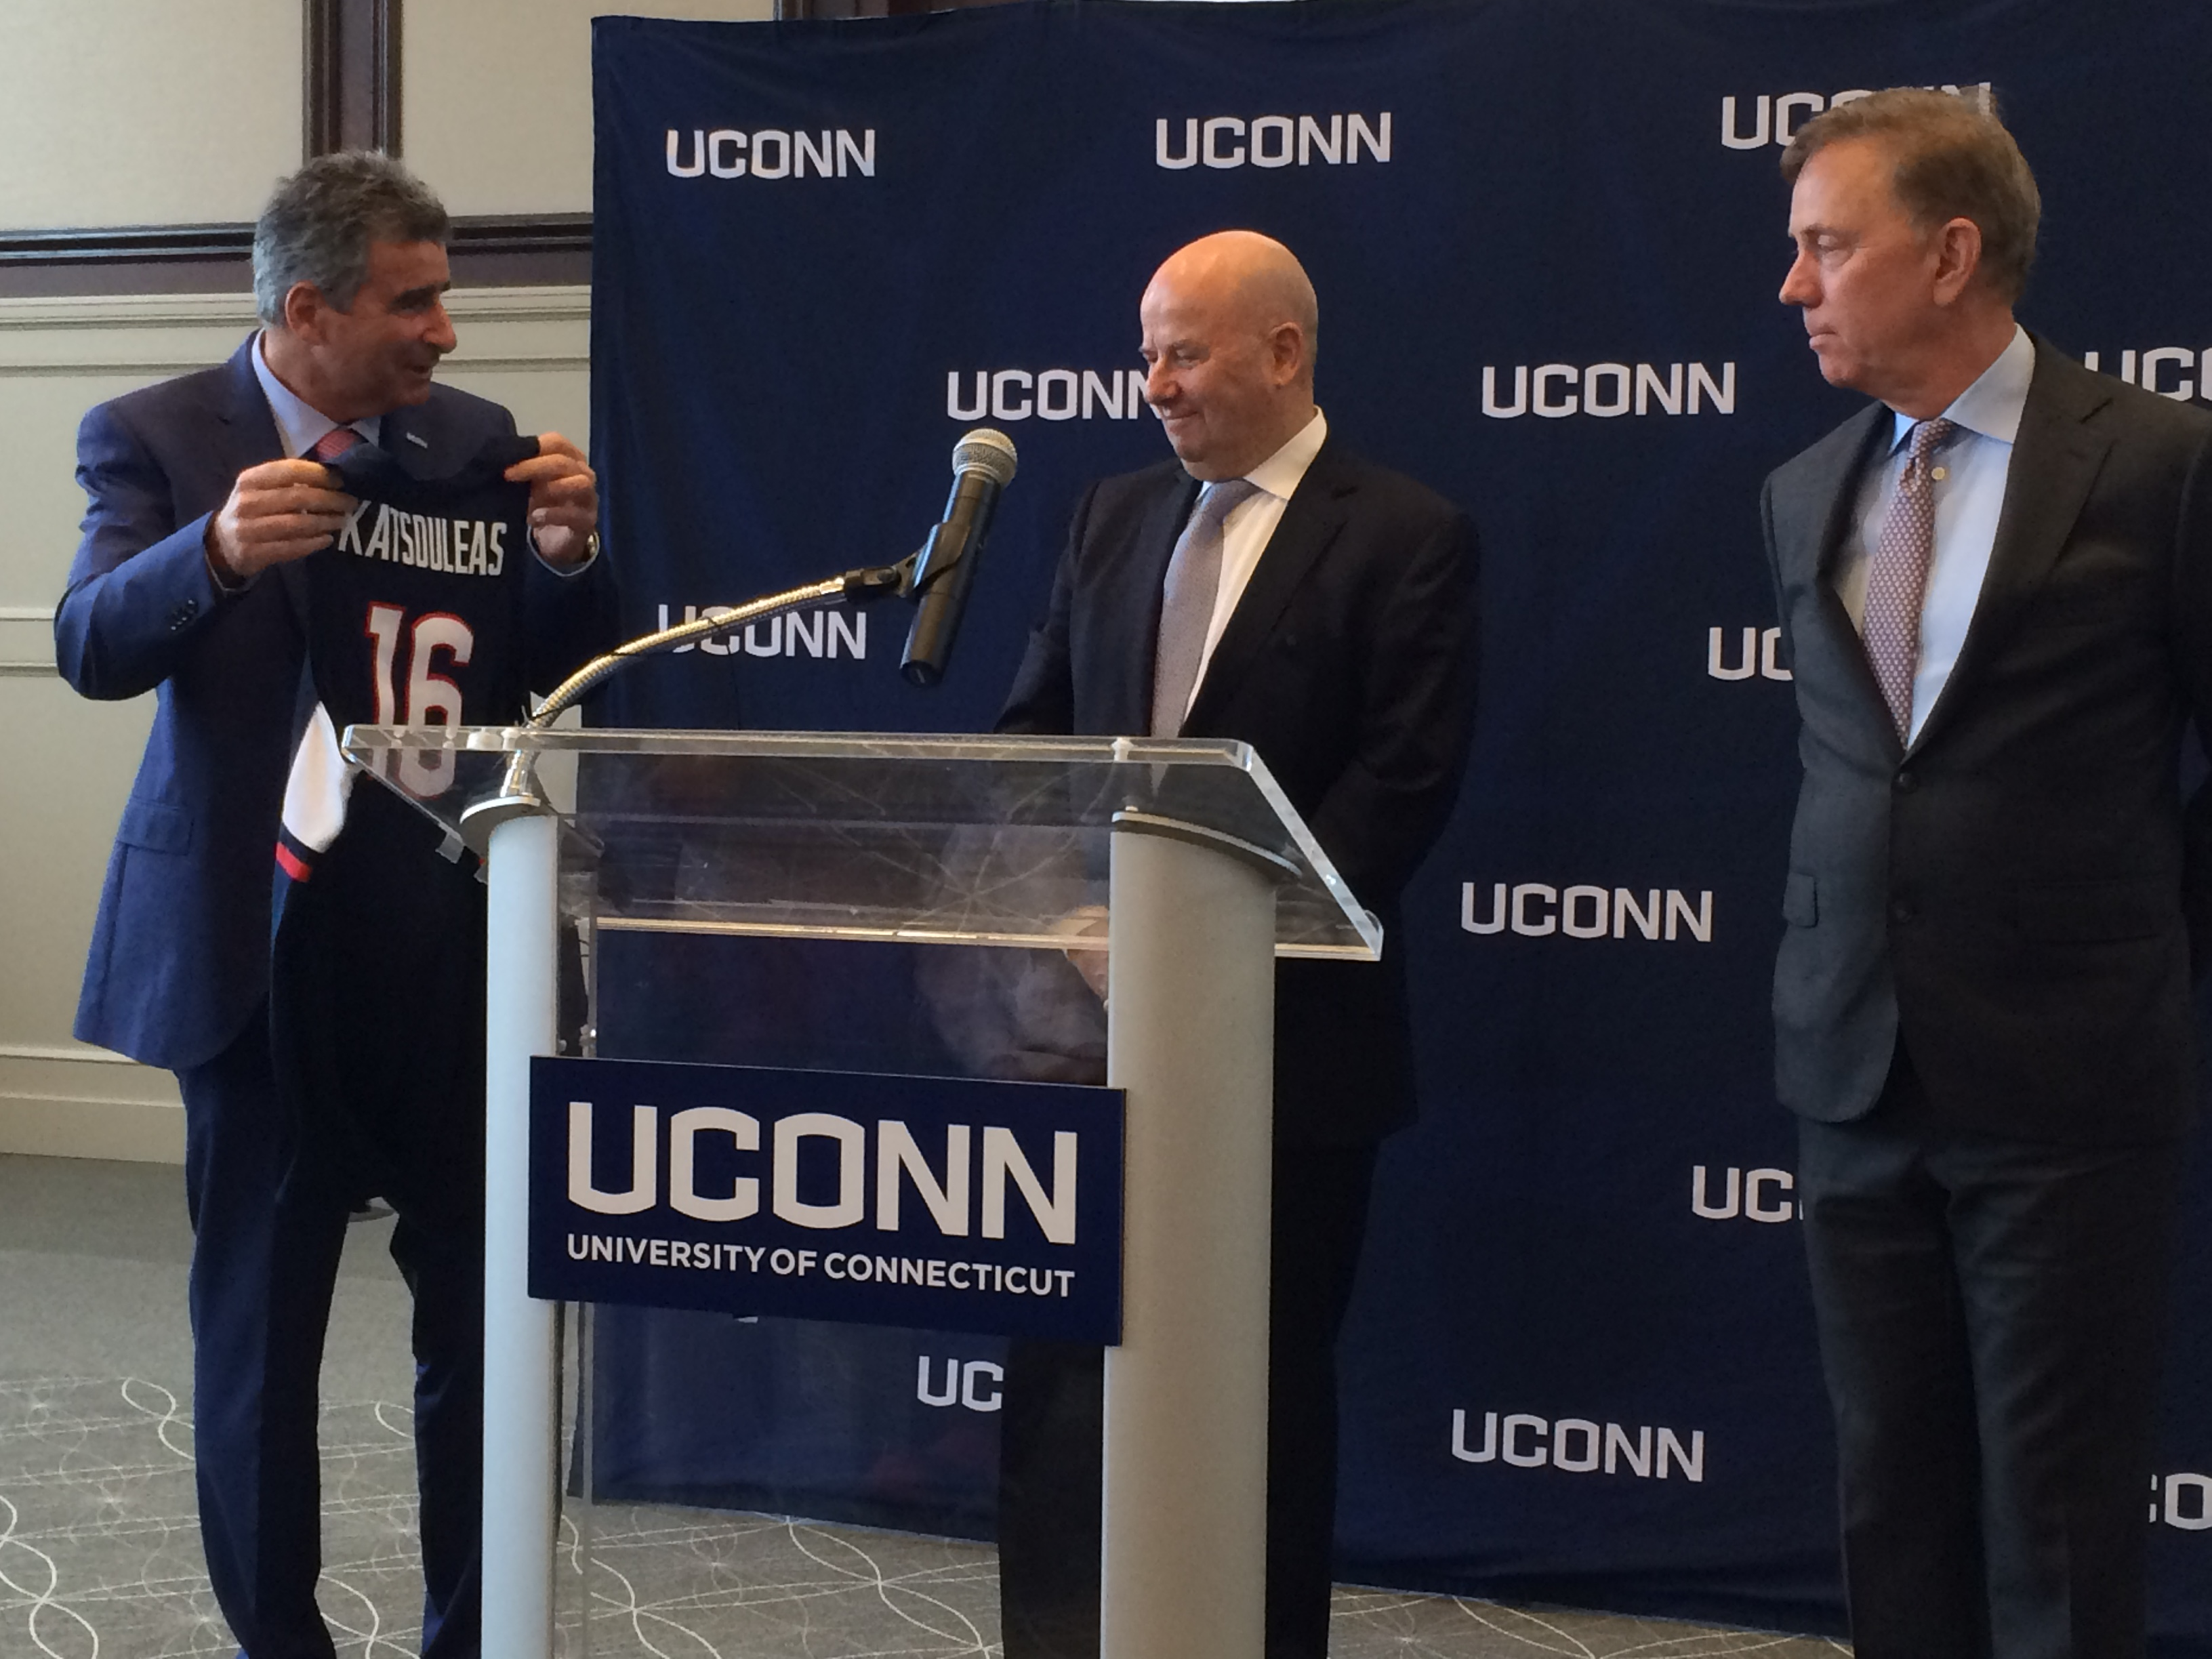 As he exits, UConn chair lobbies unreceptive governor